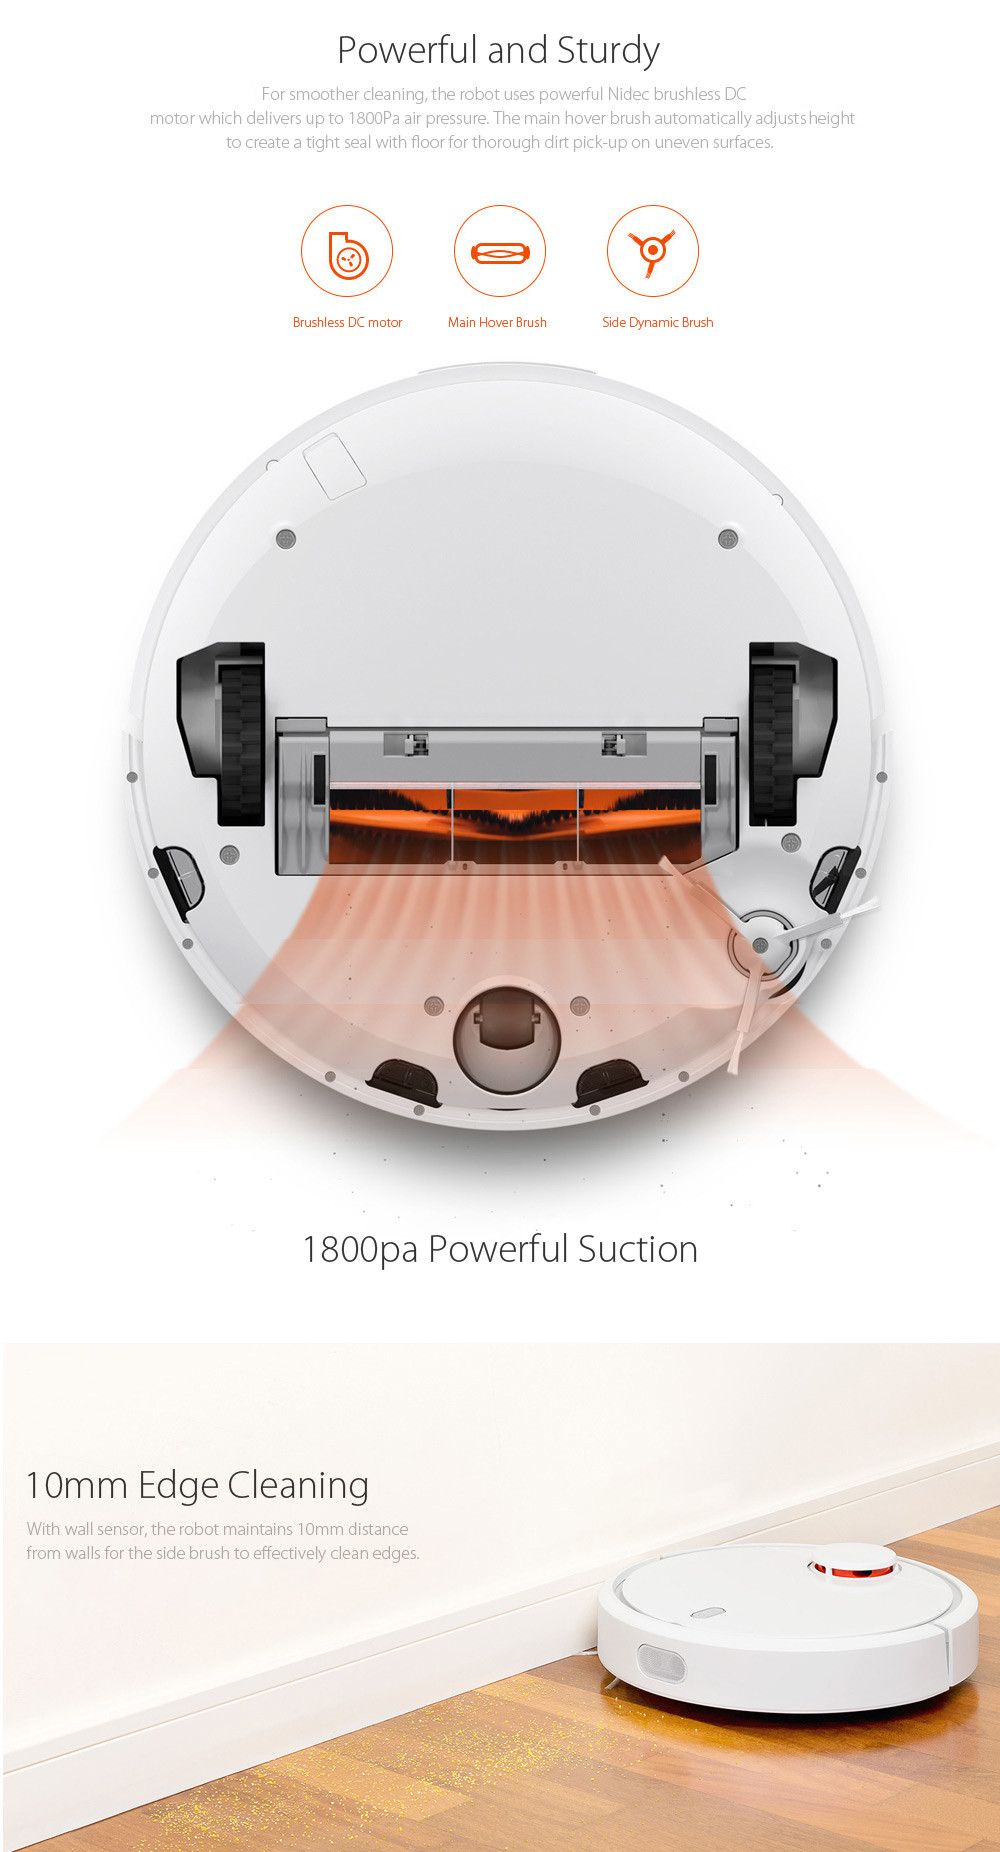 I like this. Do you think I should buy it? Smart robot